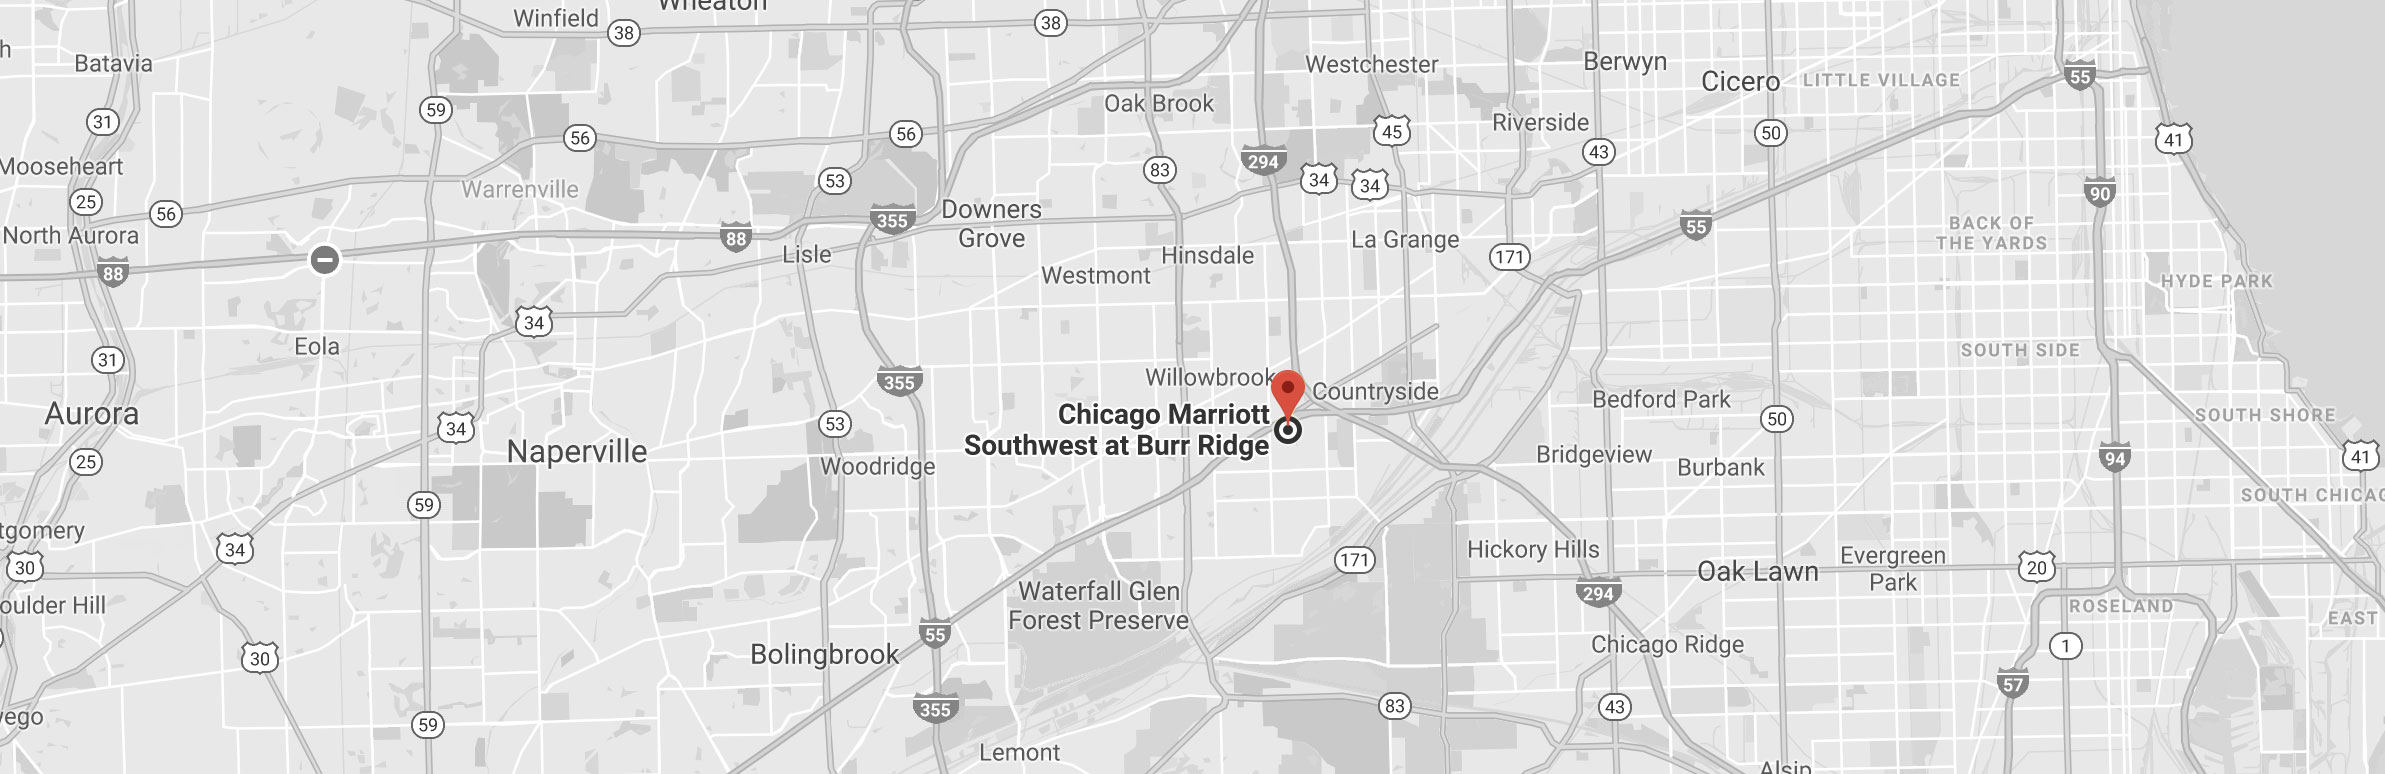 Chicago Marriott Southwest at Burr Ridge, USA